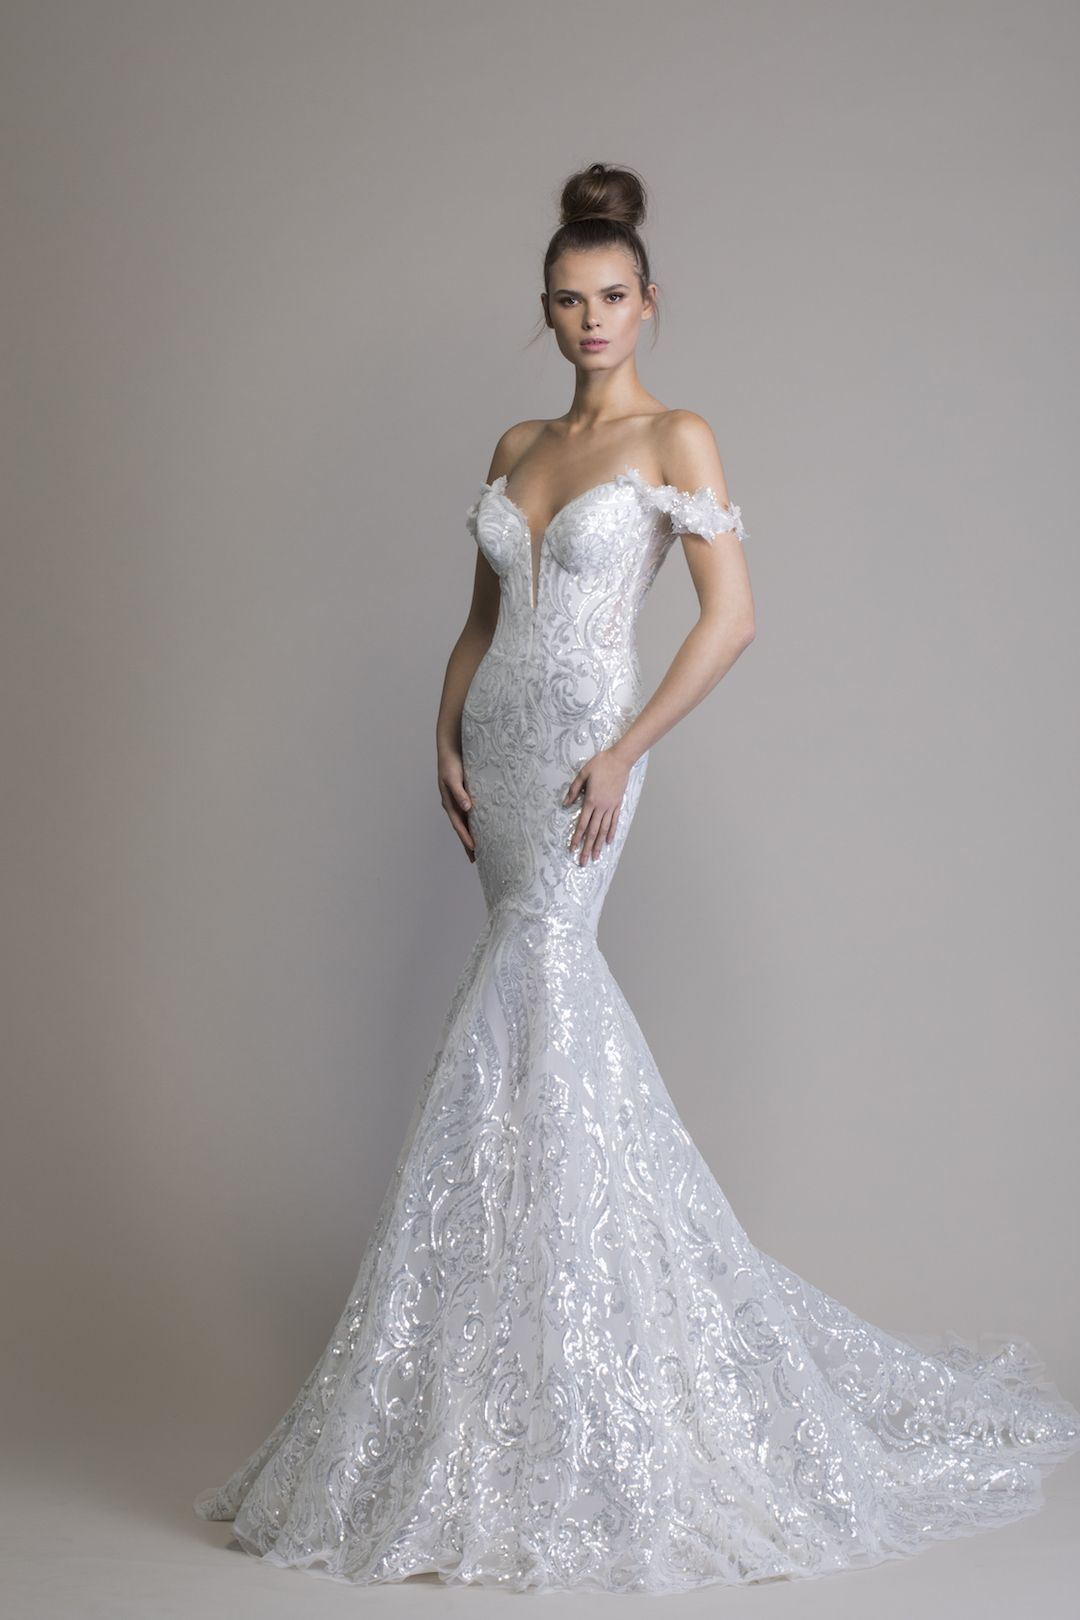 Off The Shoulder Sequin Mermaid Wedding Dress Kleinfeld Bridal In 2020 Pnina Tornai Wedding Dress Mermaid Wedding Dress Wedding Dresses